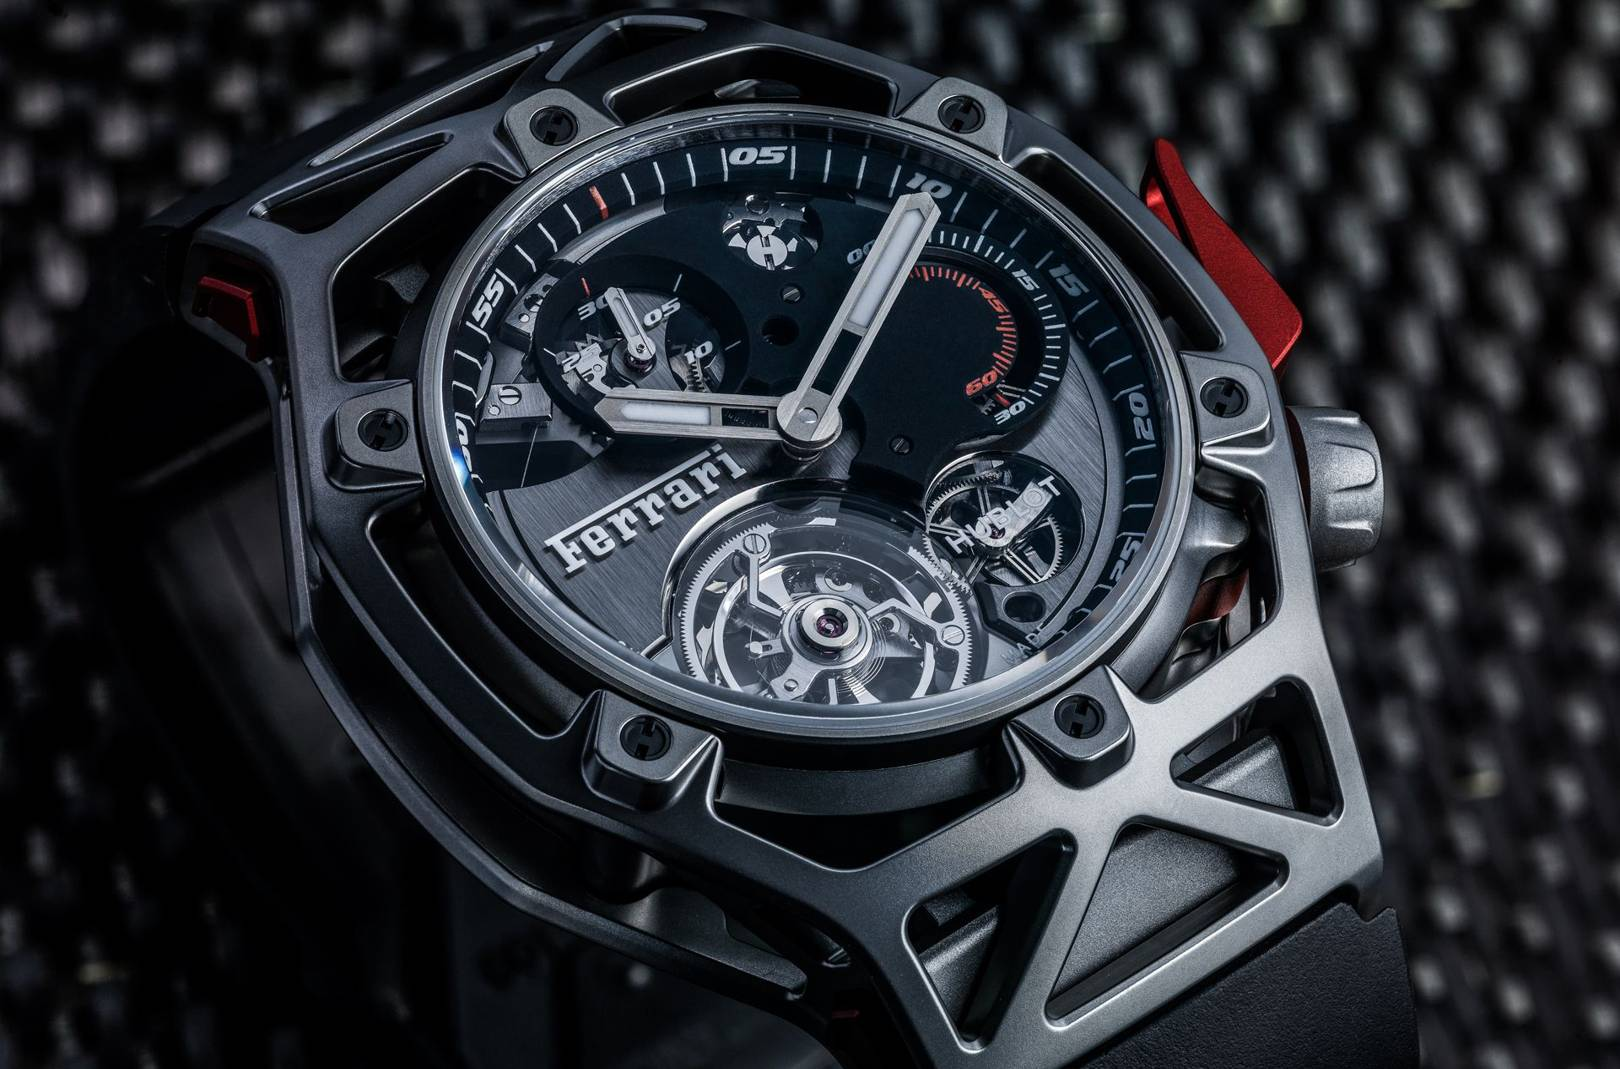 click india buy ferrari view to here larger watches online for watch in images scuderia sale